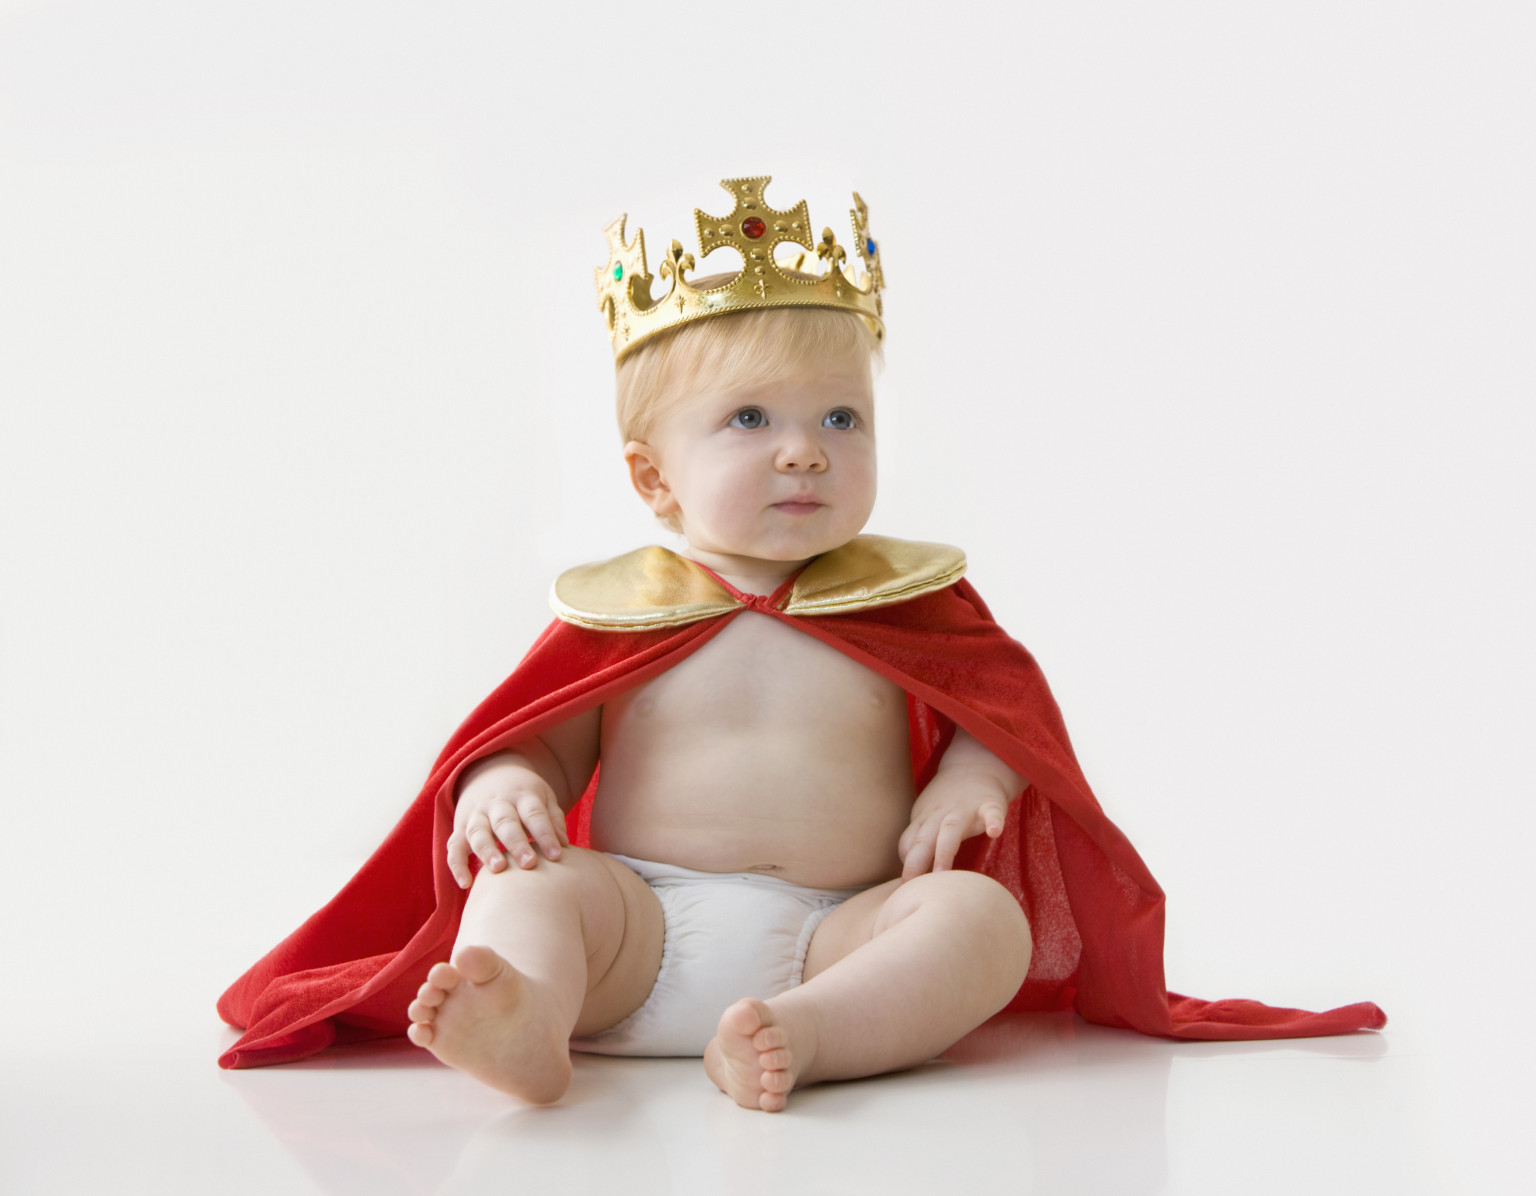 Beware Royal Baby Scams | GalTime